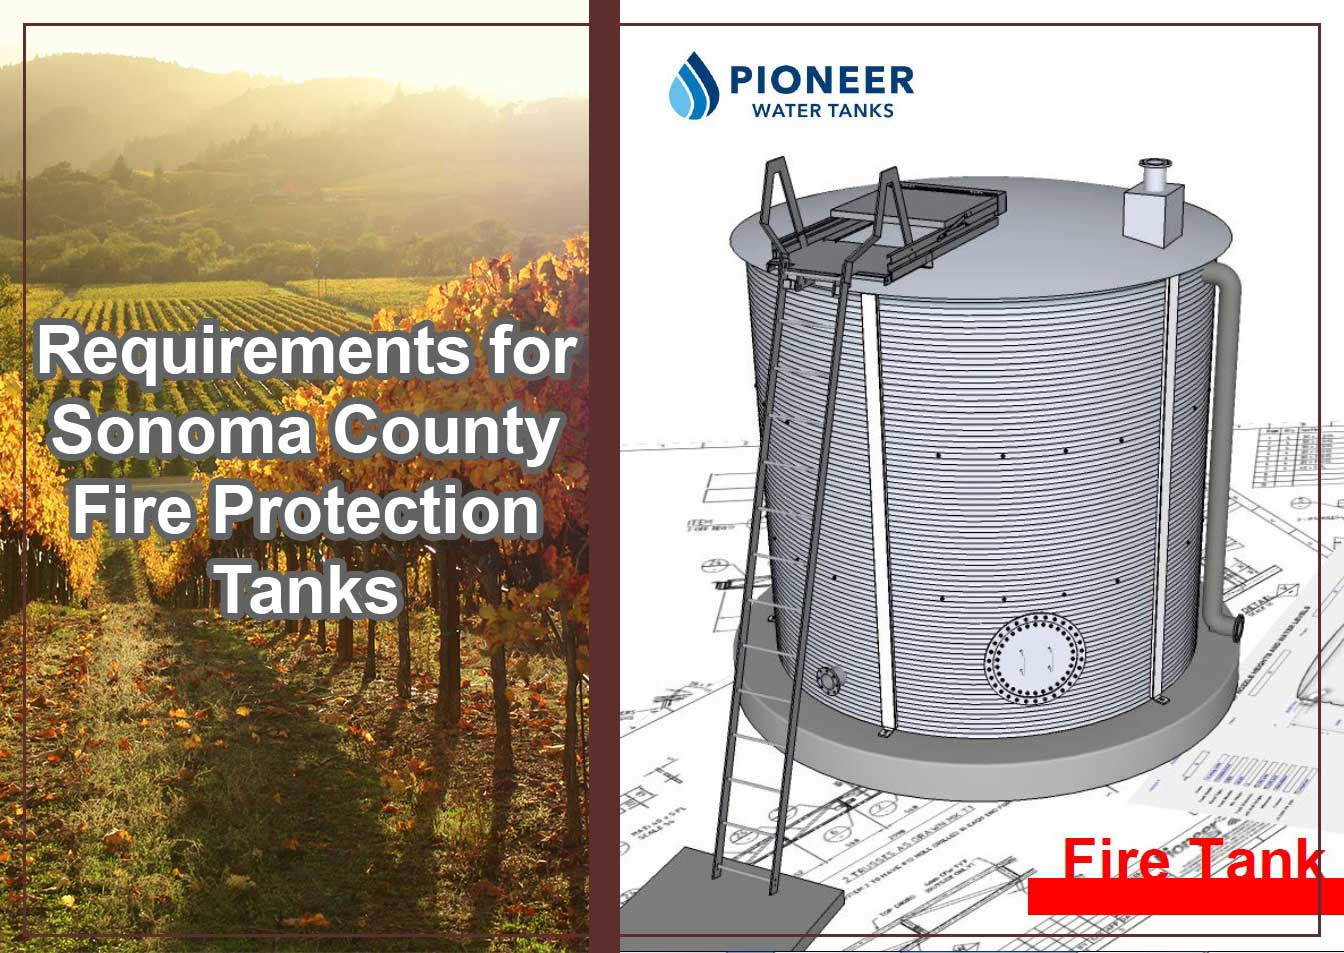 Sonoma fire protection tanks